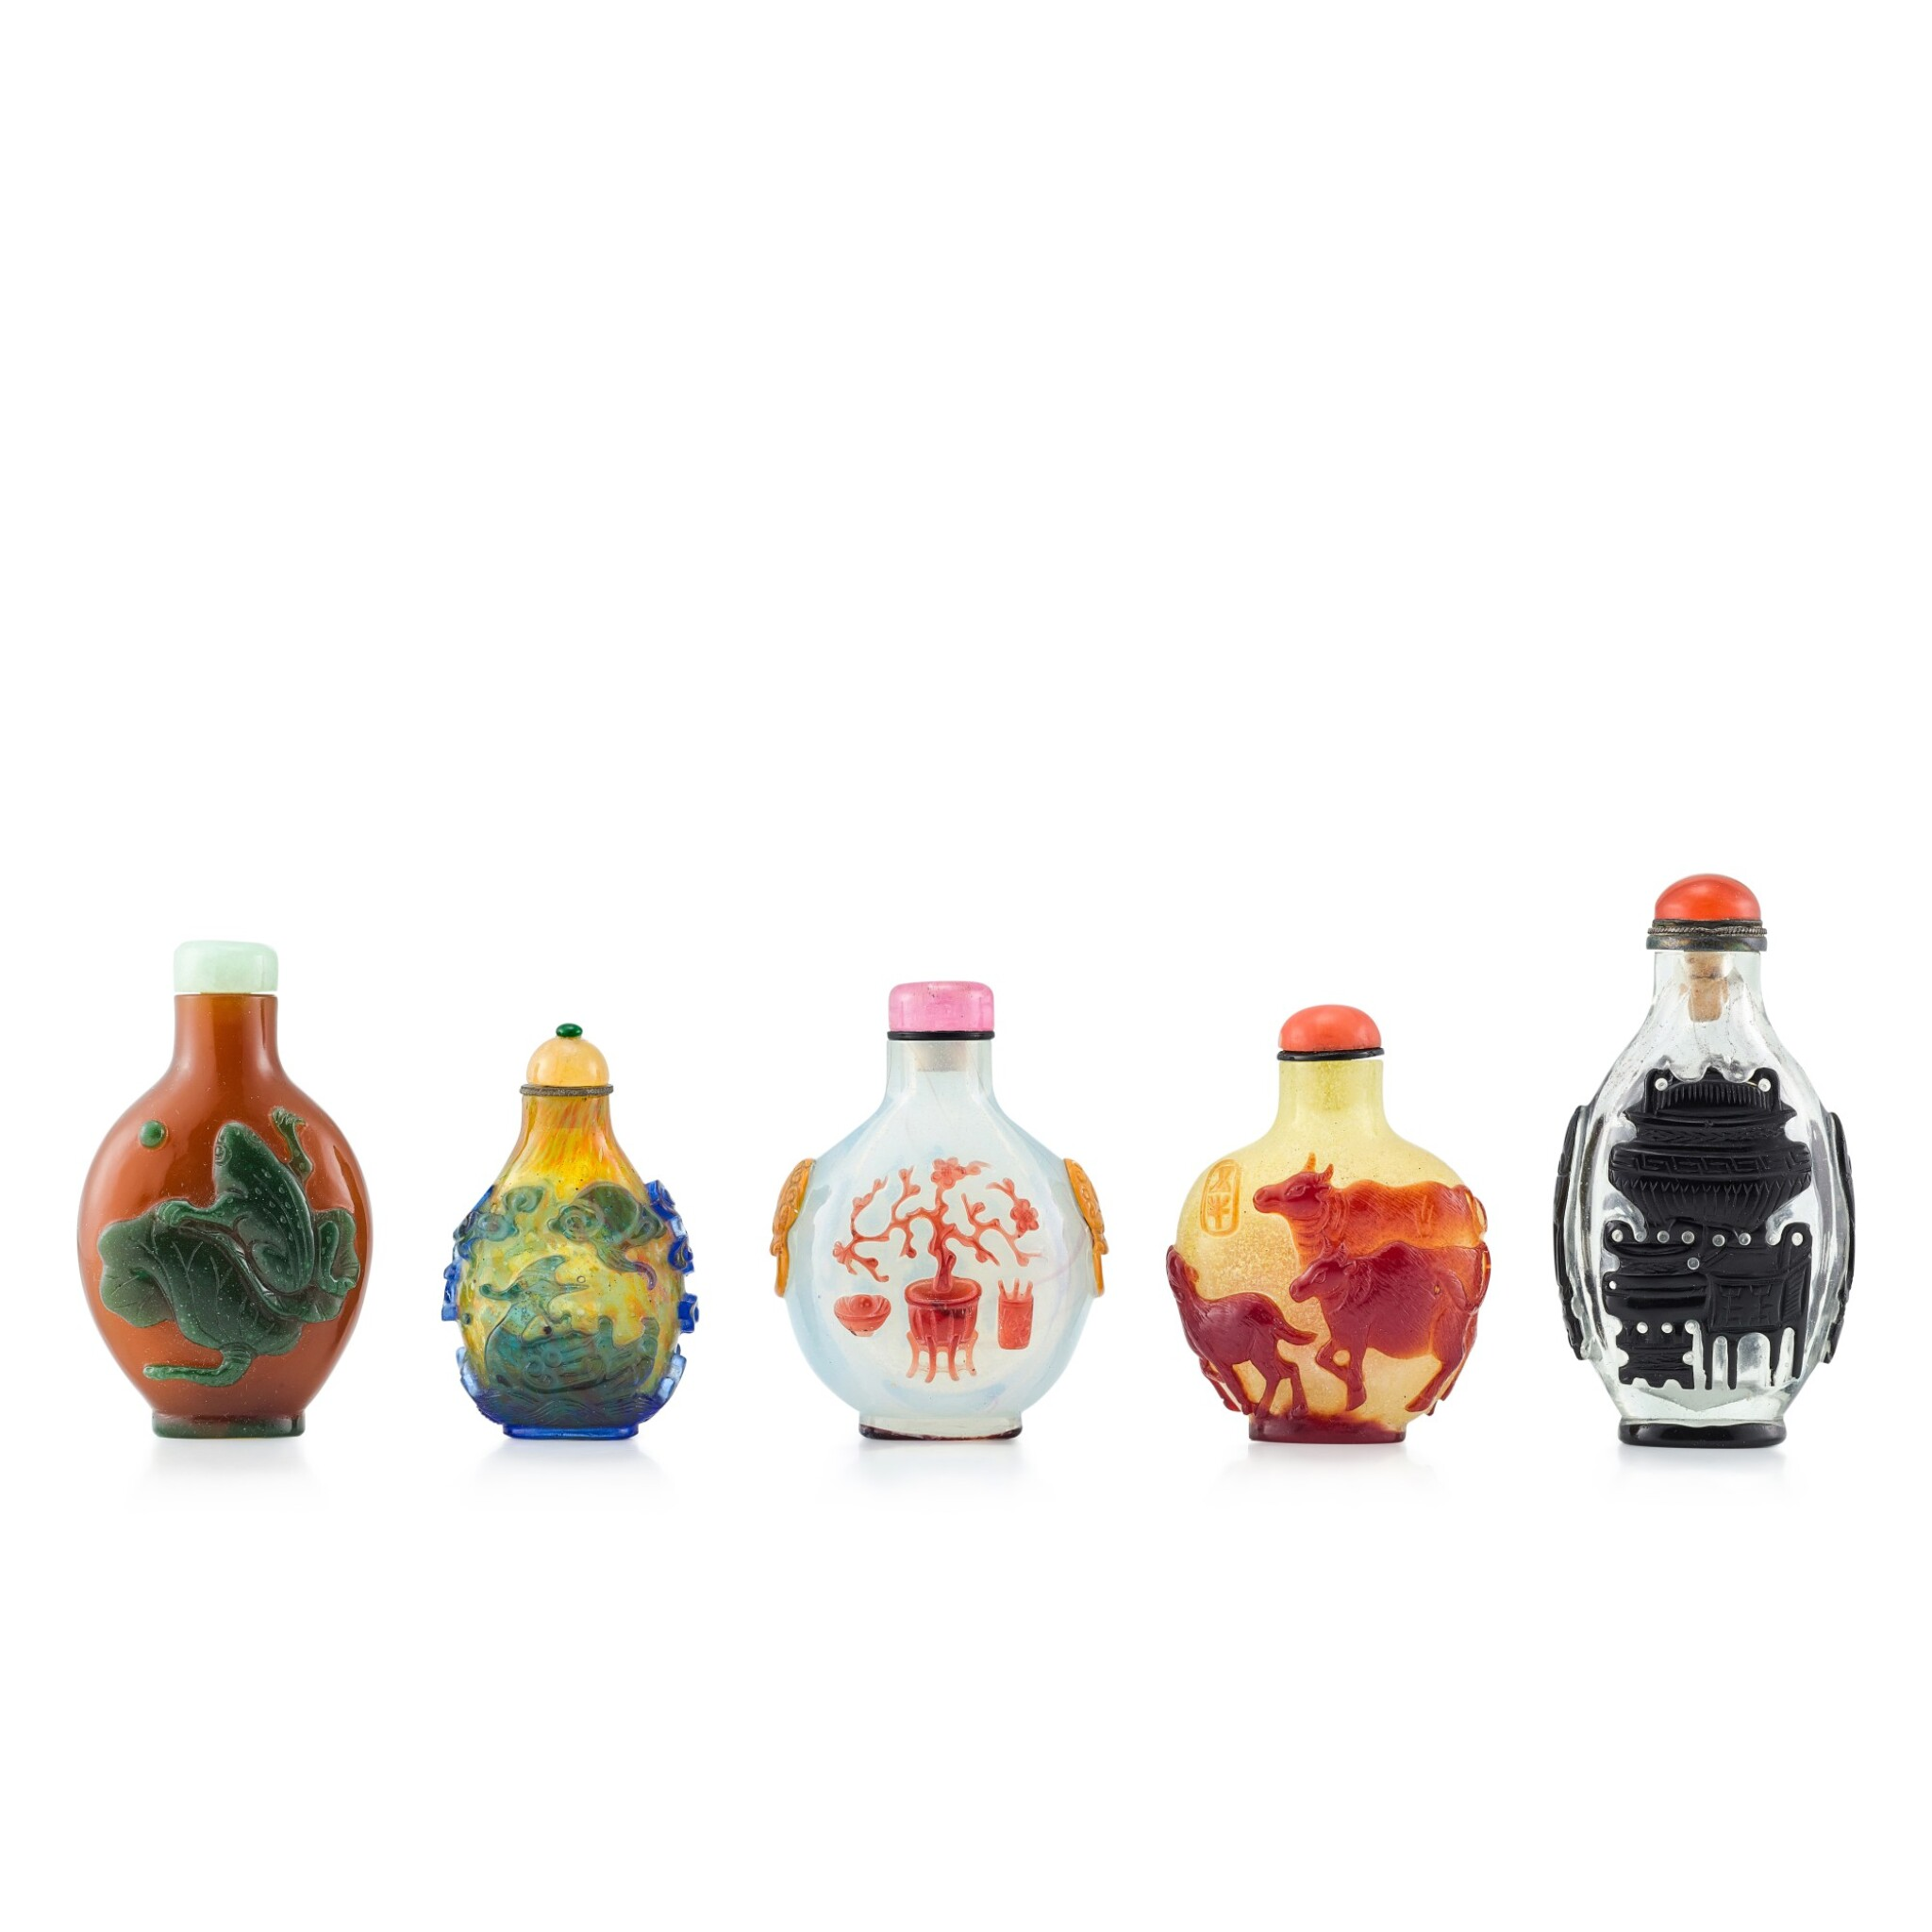 View 1 of Lot 3072. Five Overlay Glass Snuff Bottles Qing Dynasty, 18th - 19th Century | 清十八至十九世紀 雙色套料鼻煙壺五件.